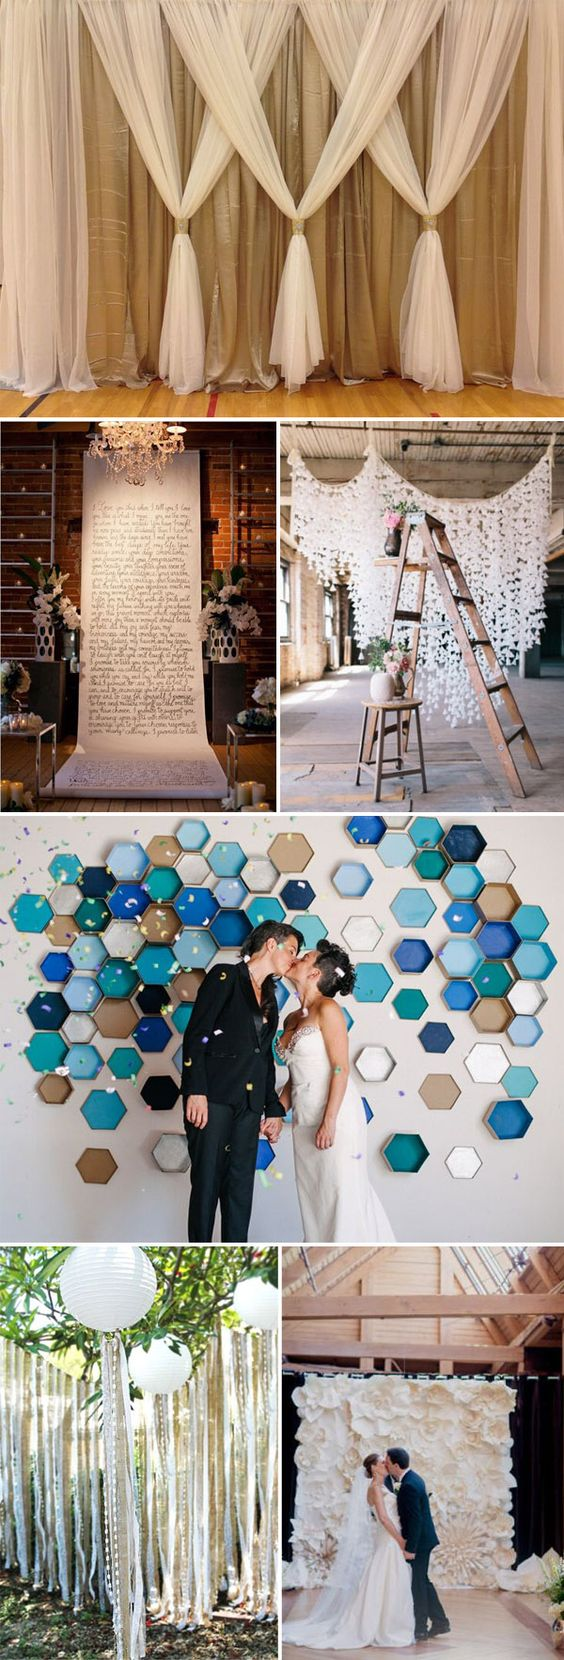 Diy wedding backdrop backdrop ideas and wedding backdrops for Wedding backdrops